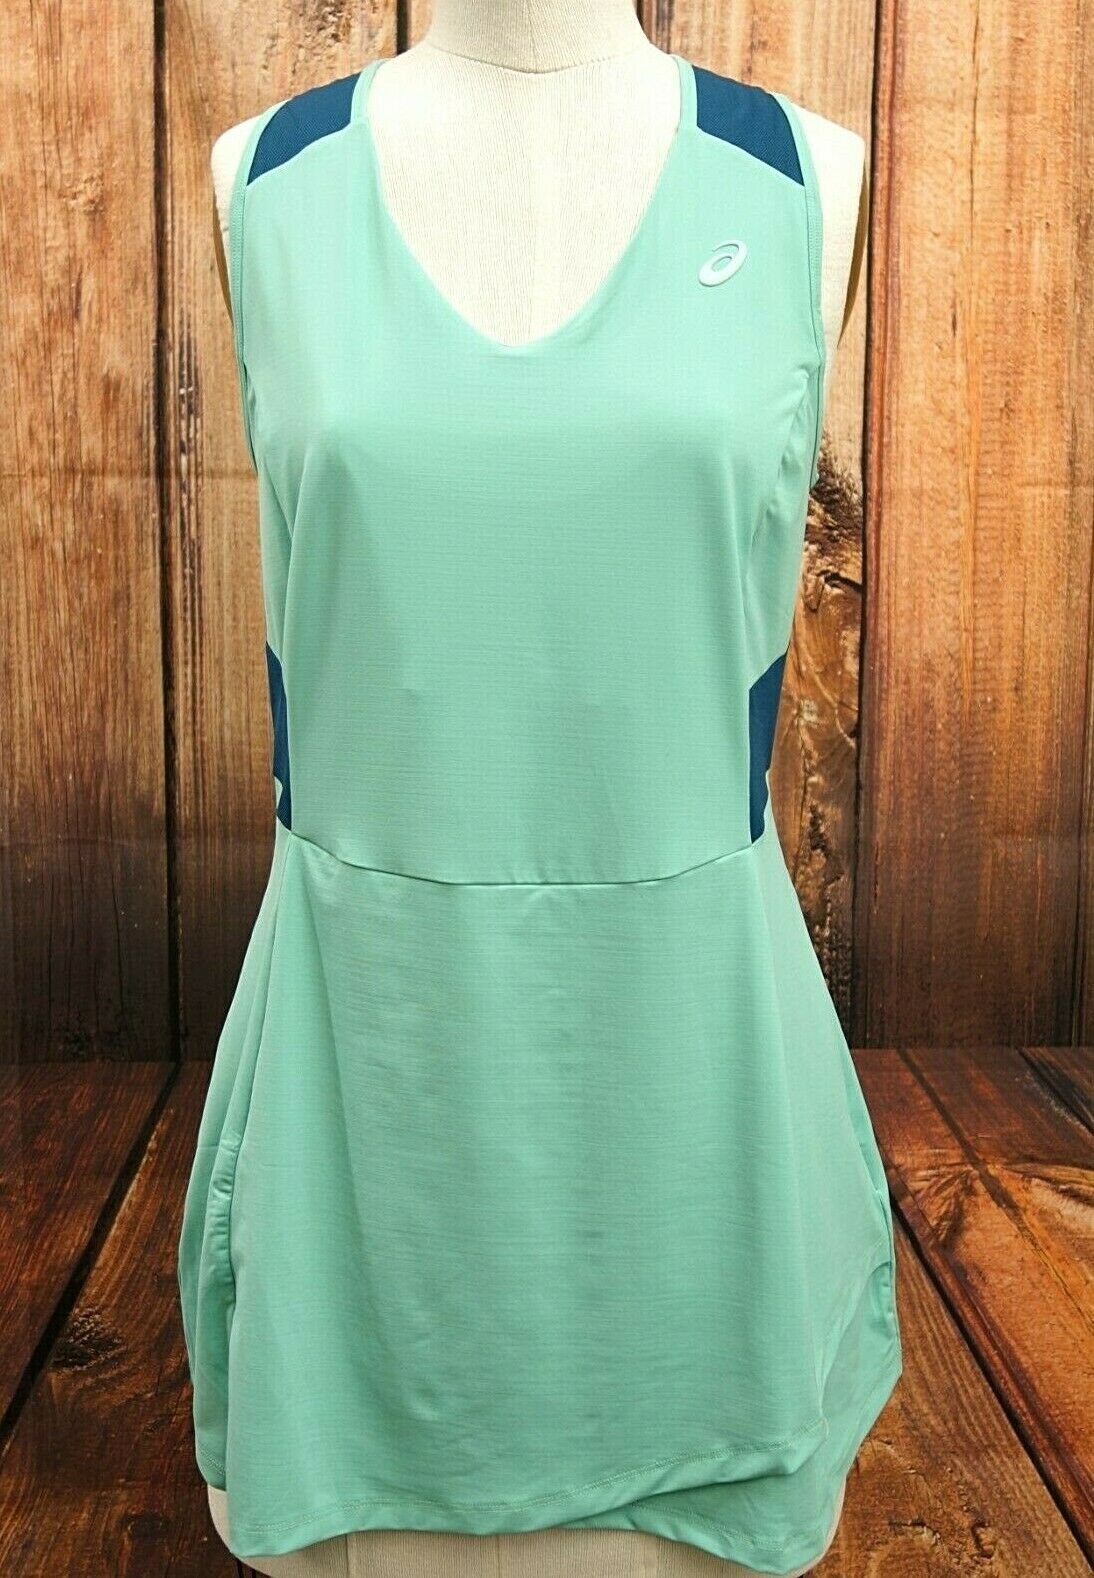 New Asics Womens Motion Dry Performance Dress Tennis Running Crossfit Size Large